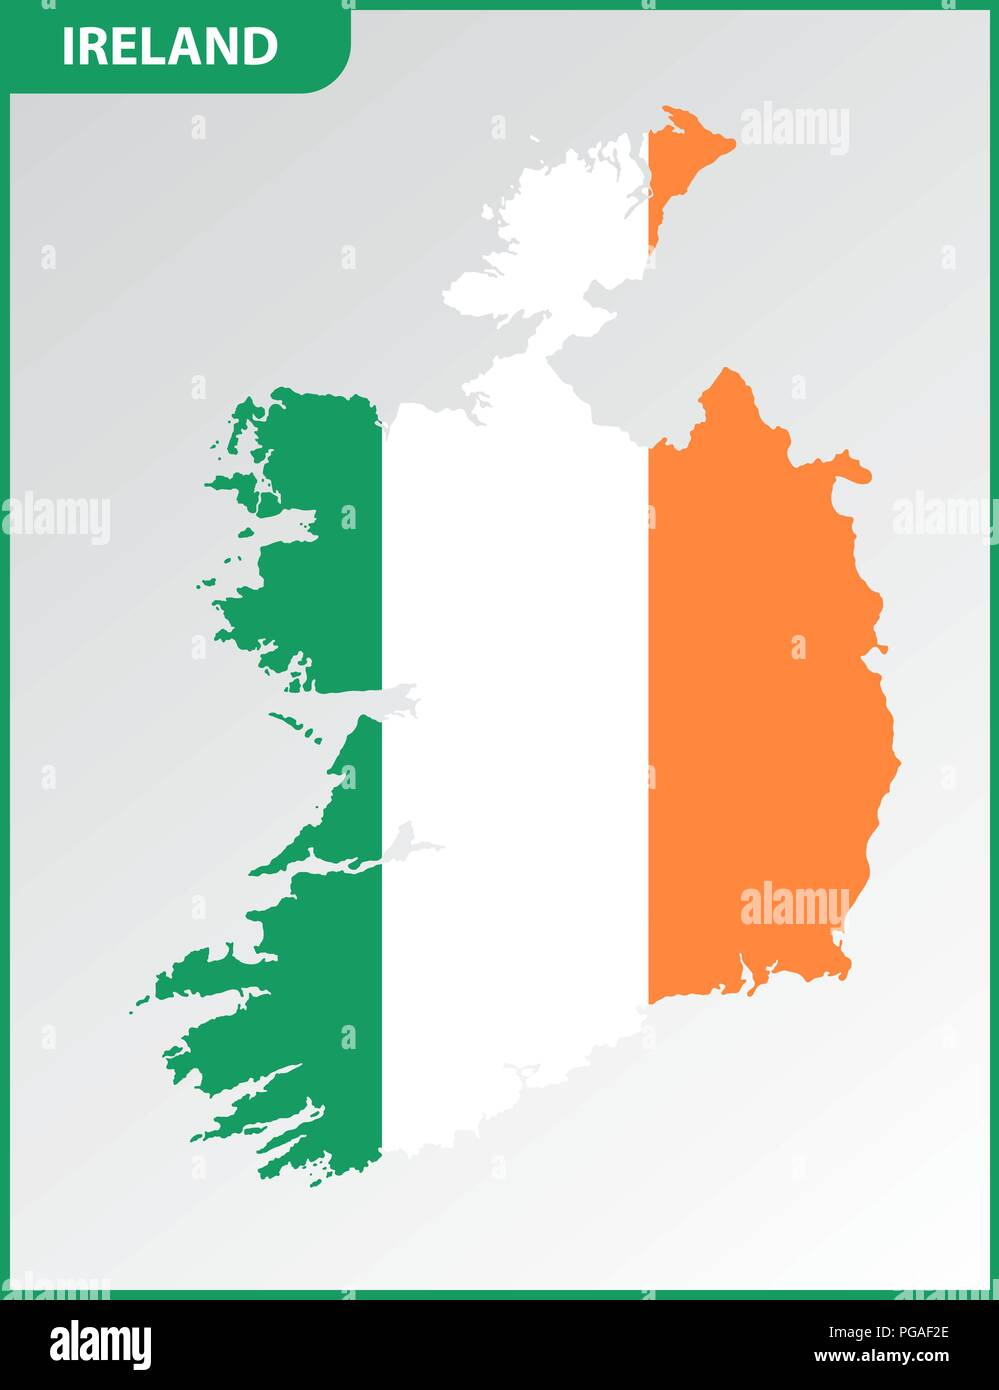 Detailed Map Of Ireland.The Detailed Map Of Ireland With National Flag Stock Vector Art